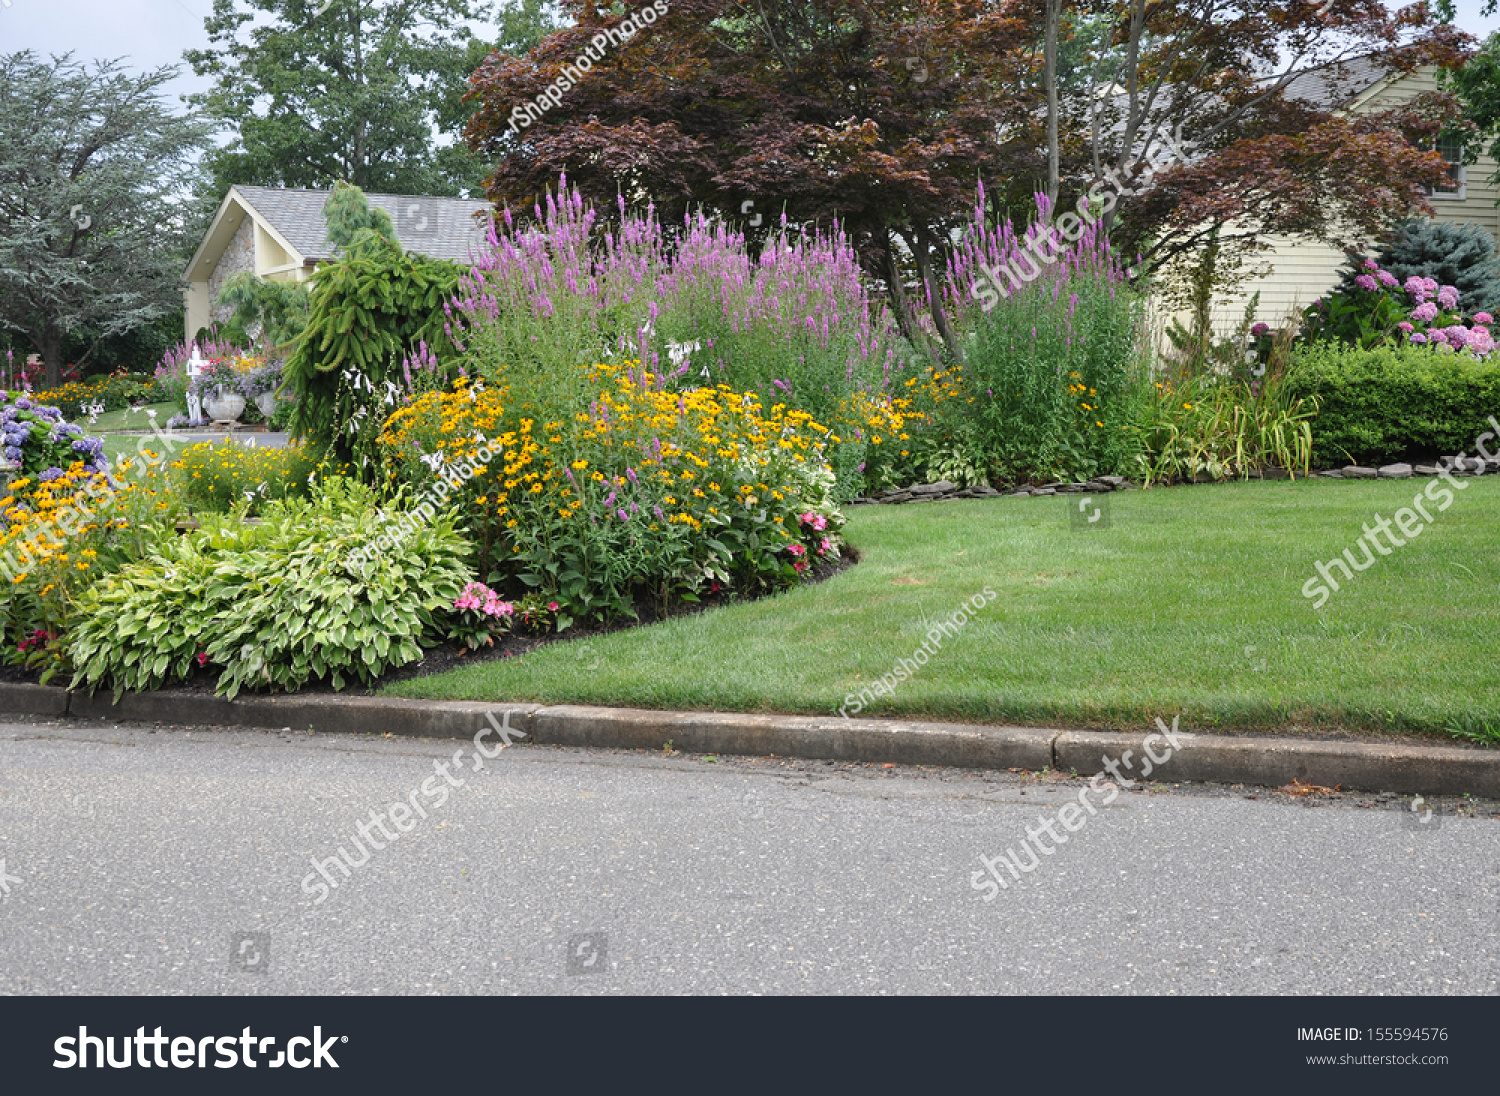 Front yard flower gardens - Suburban Home Flower Garden Front Yard Lawn Curb Residential Neighborhood Usa